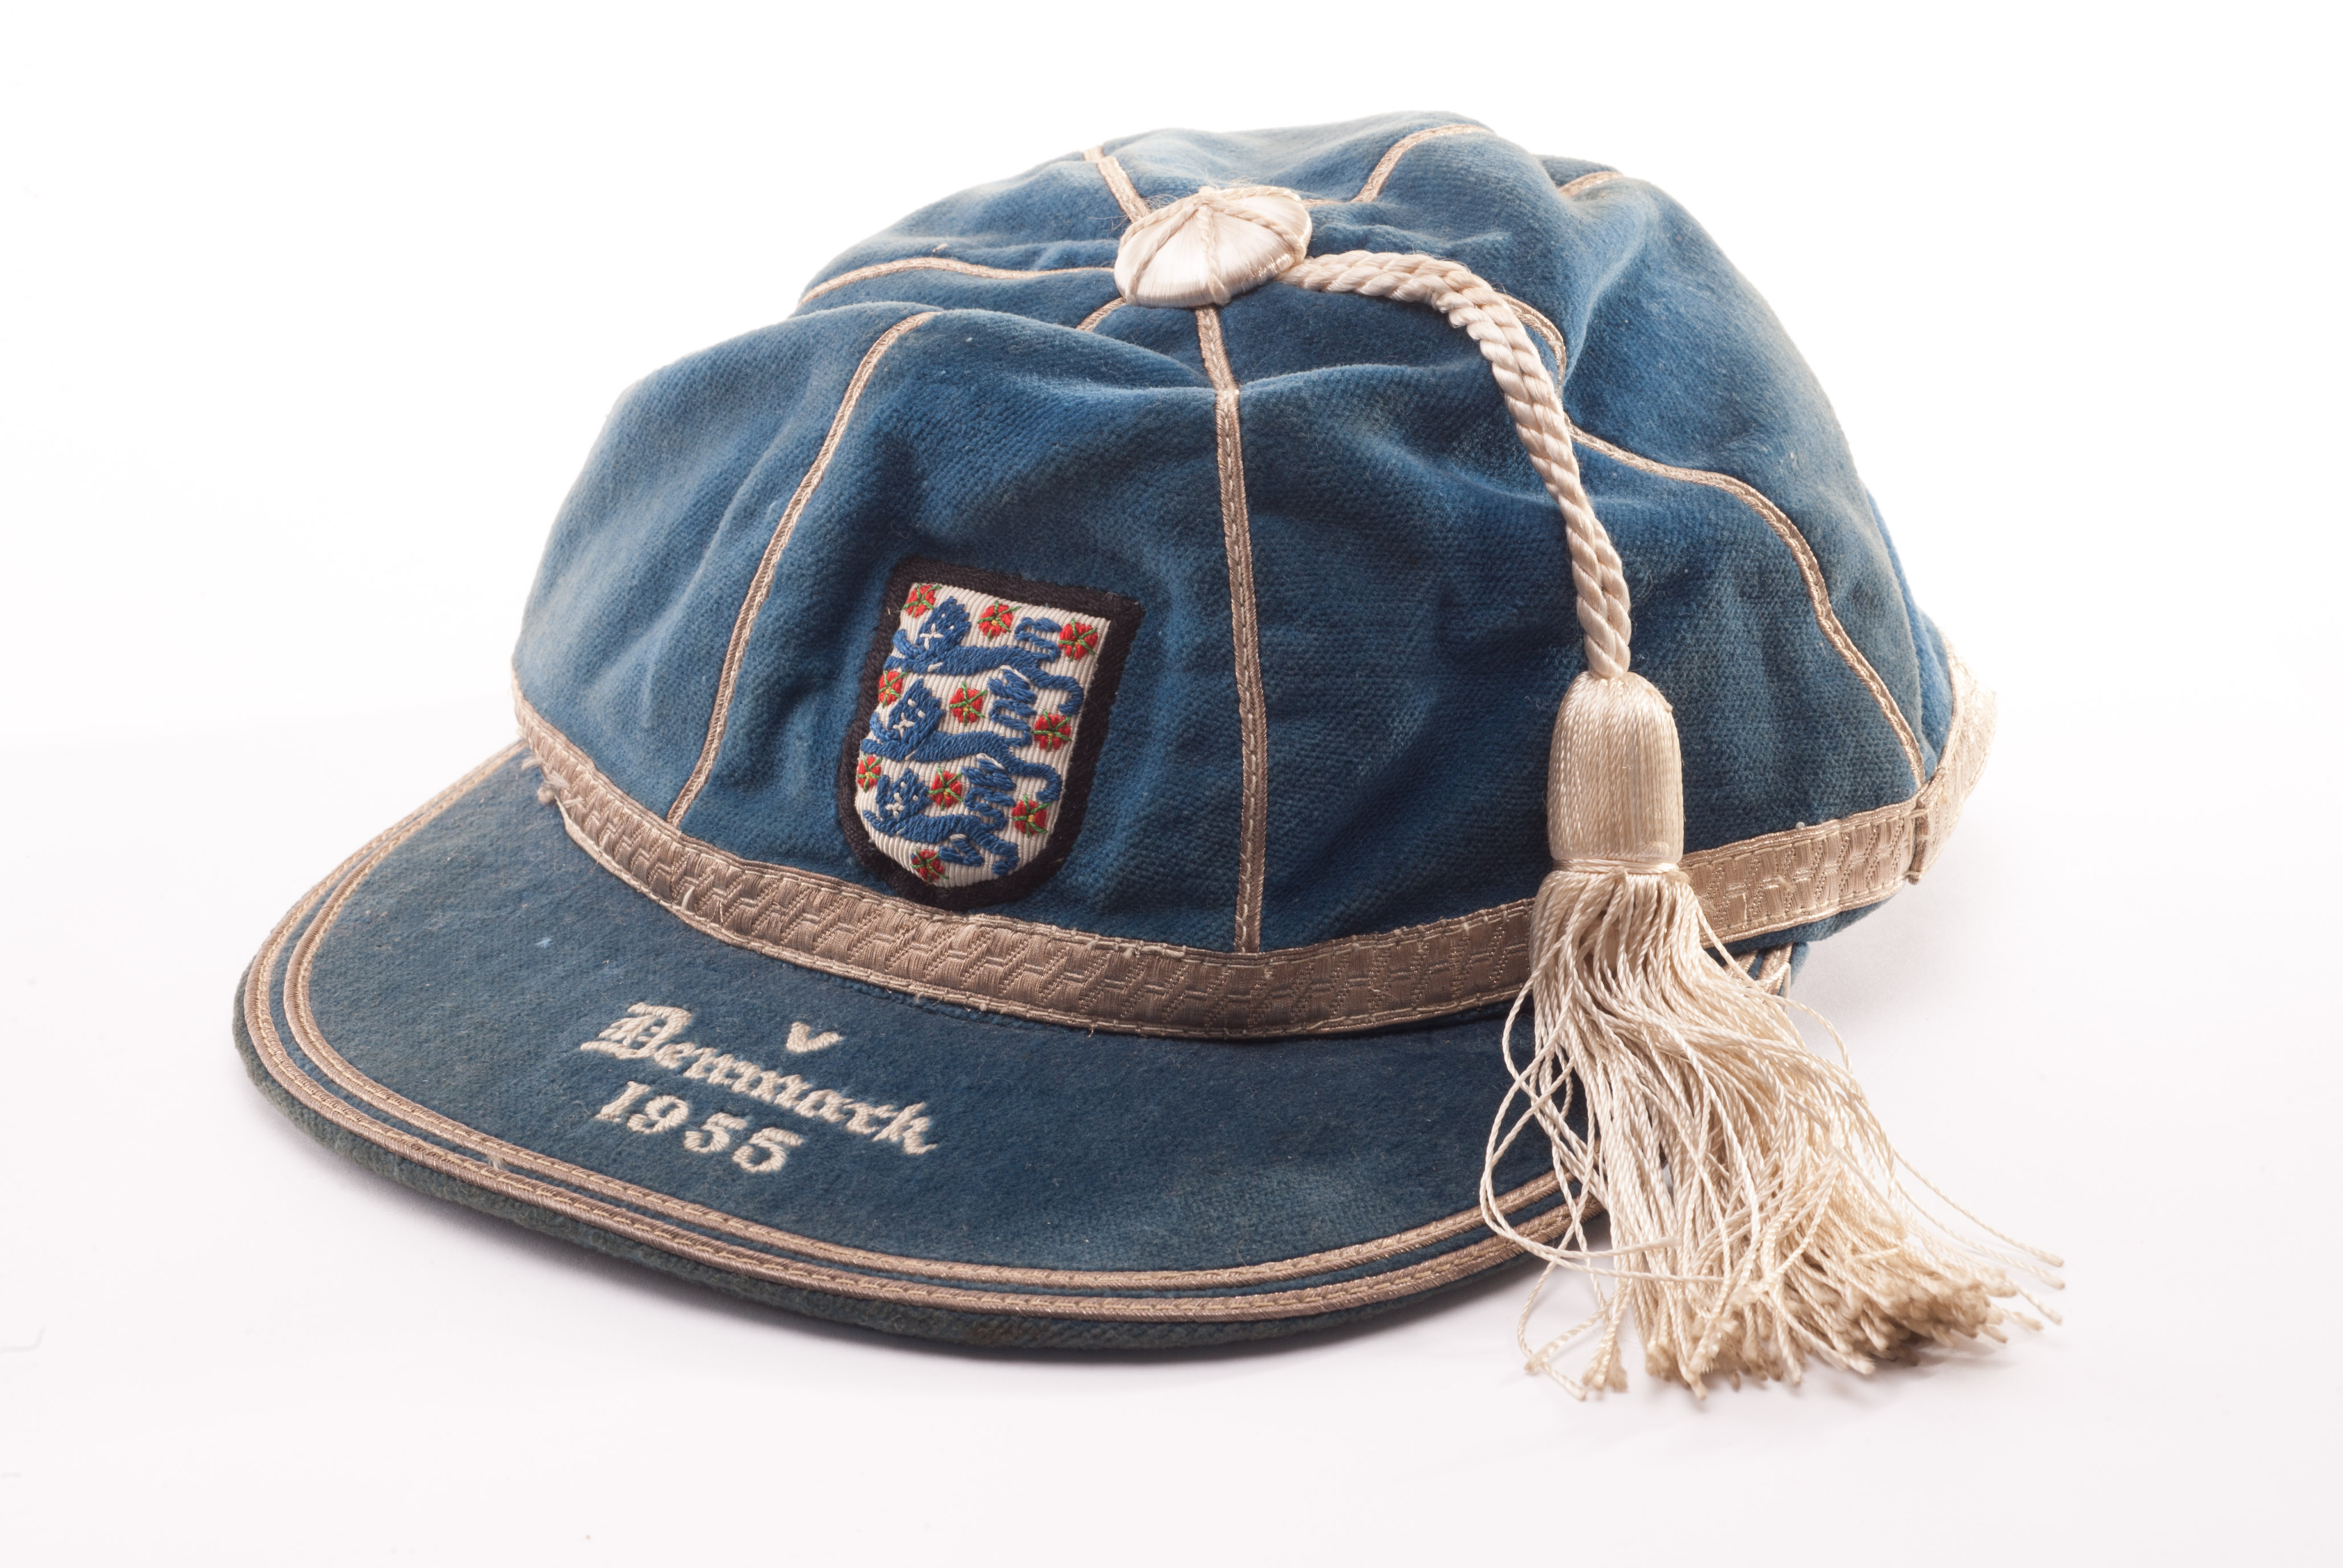 England Football Caps For Sale - Parchment N Lead 94ffc9b31a5